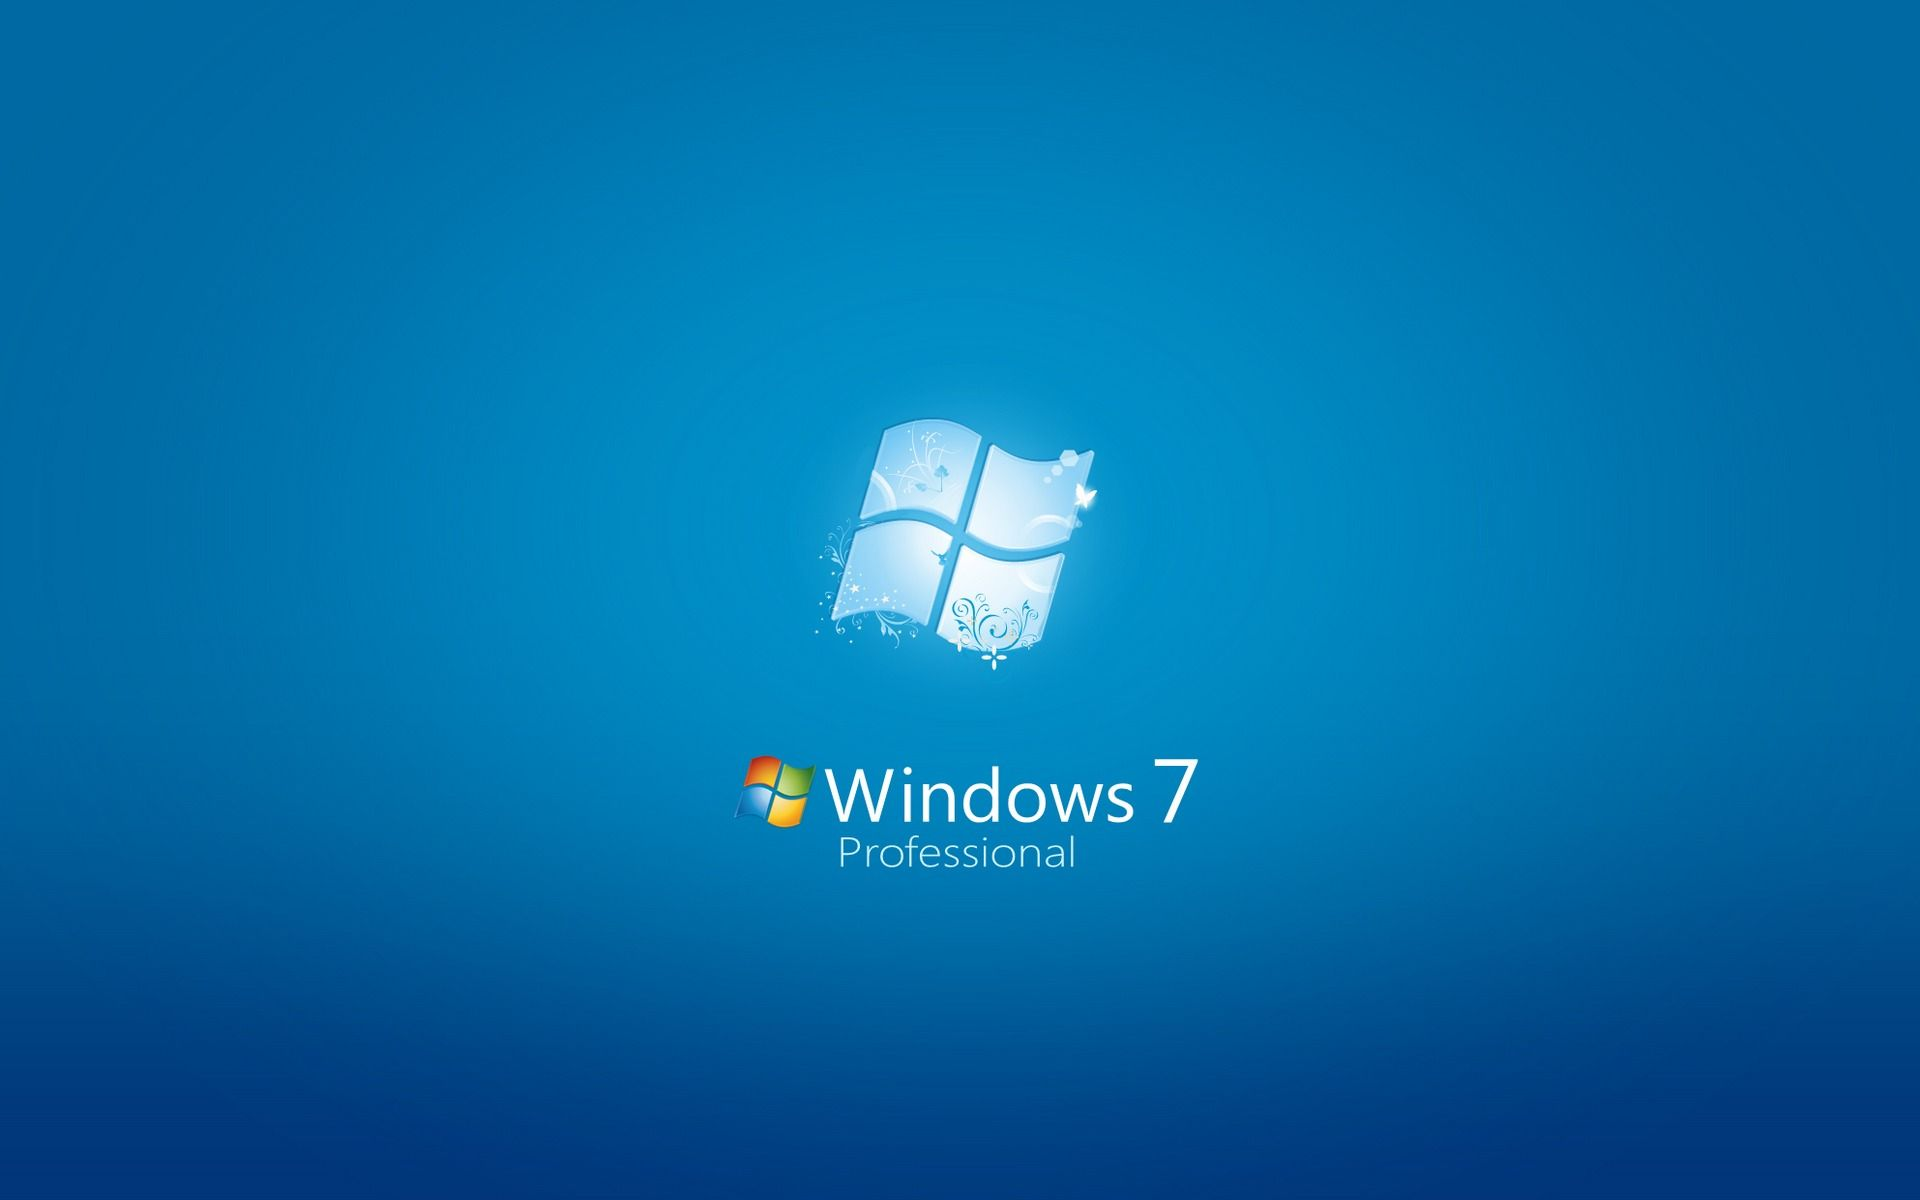 Windows 7 Professional Desktop Wallpapers Top Free Windows 7 Professional Desktop Backgrounds Wallpaperaccess